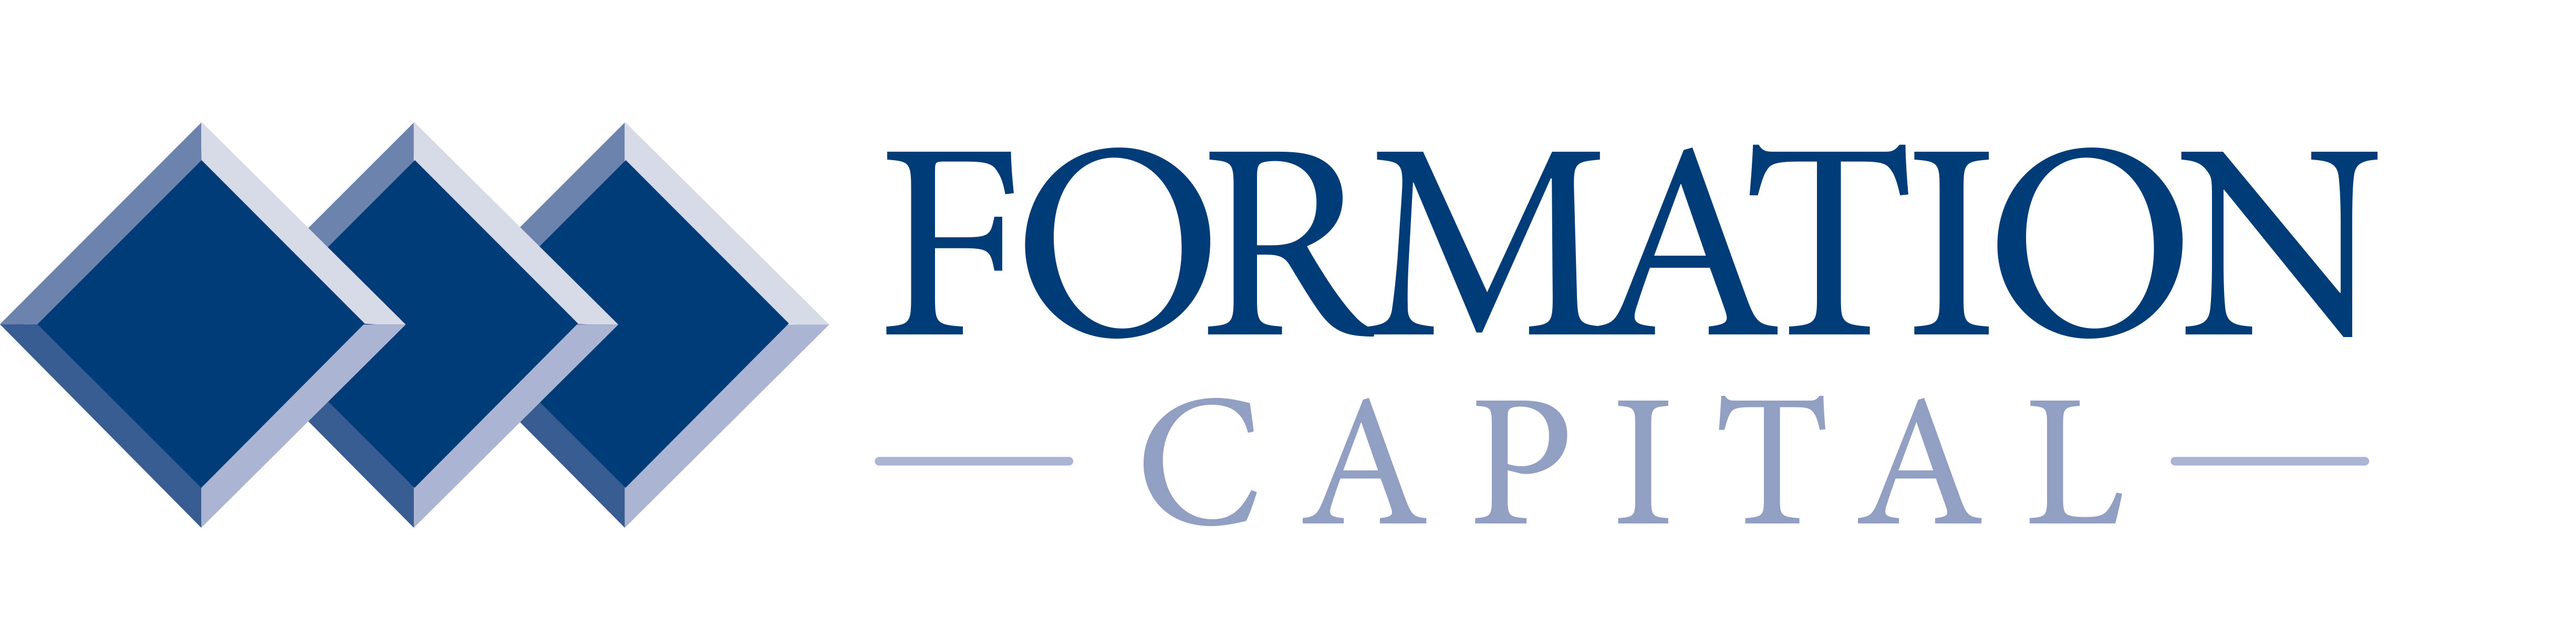 Capital Formation: Meaning, Process and Other Details